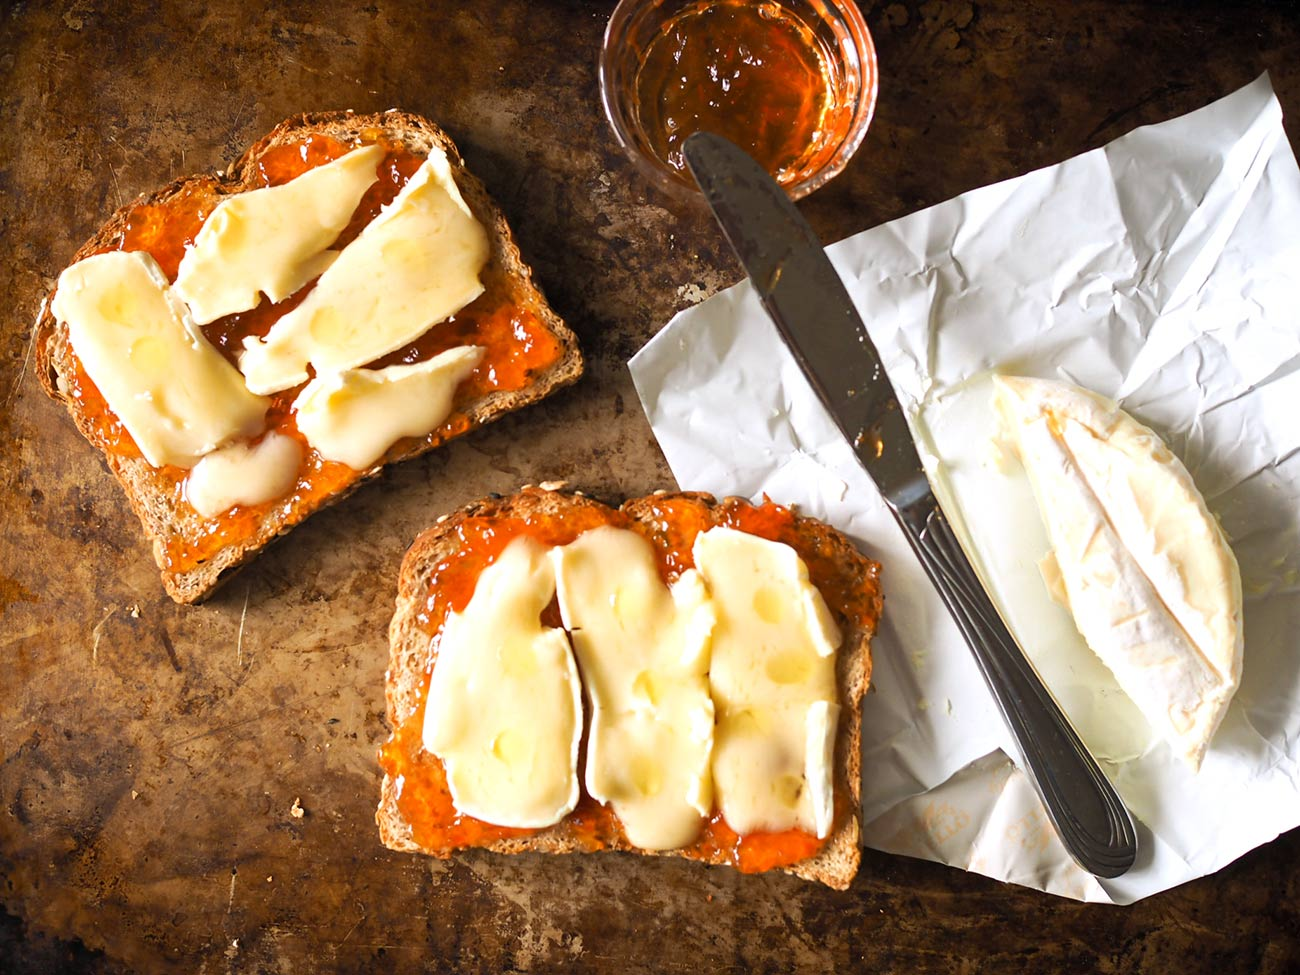 toast ideas - brie with red pepper jelly